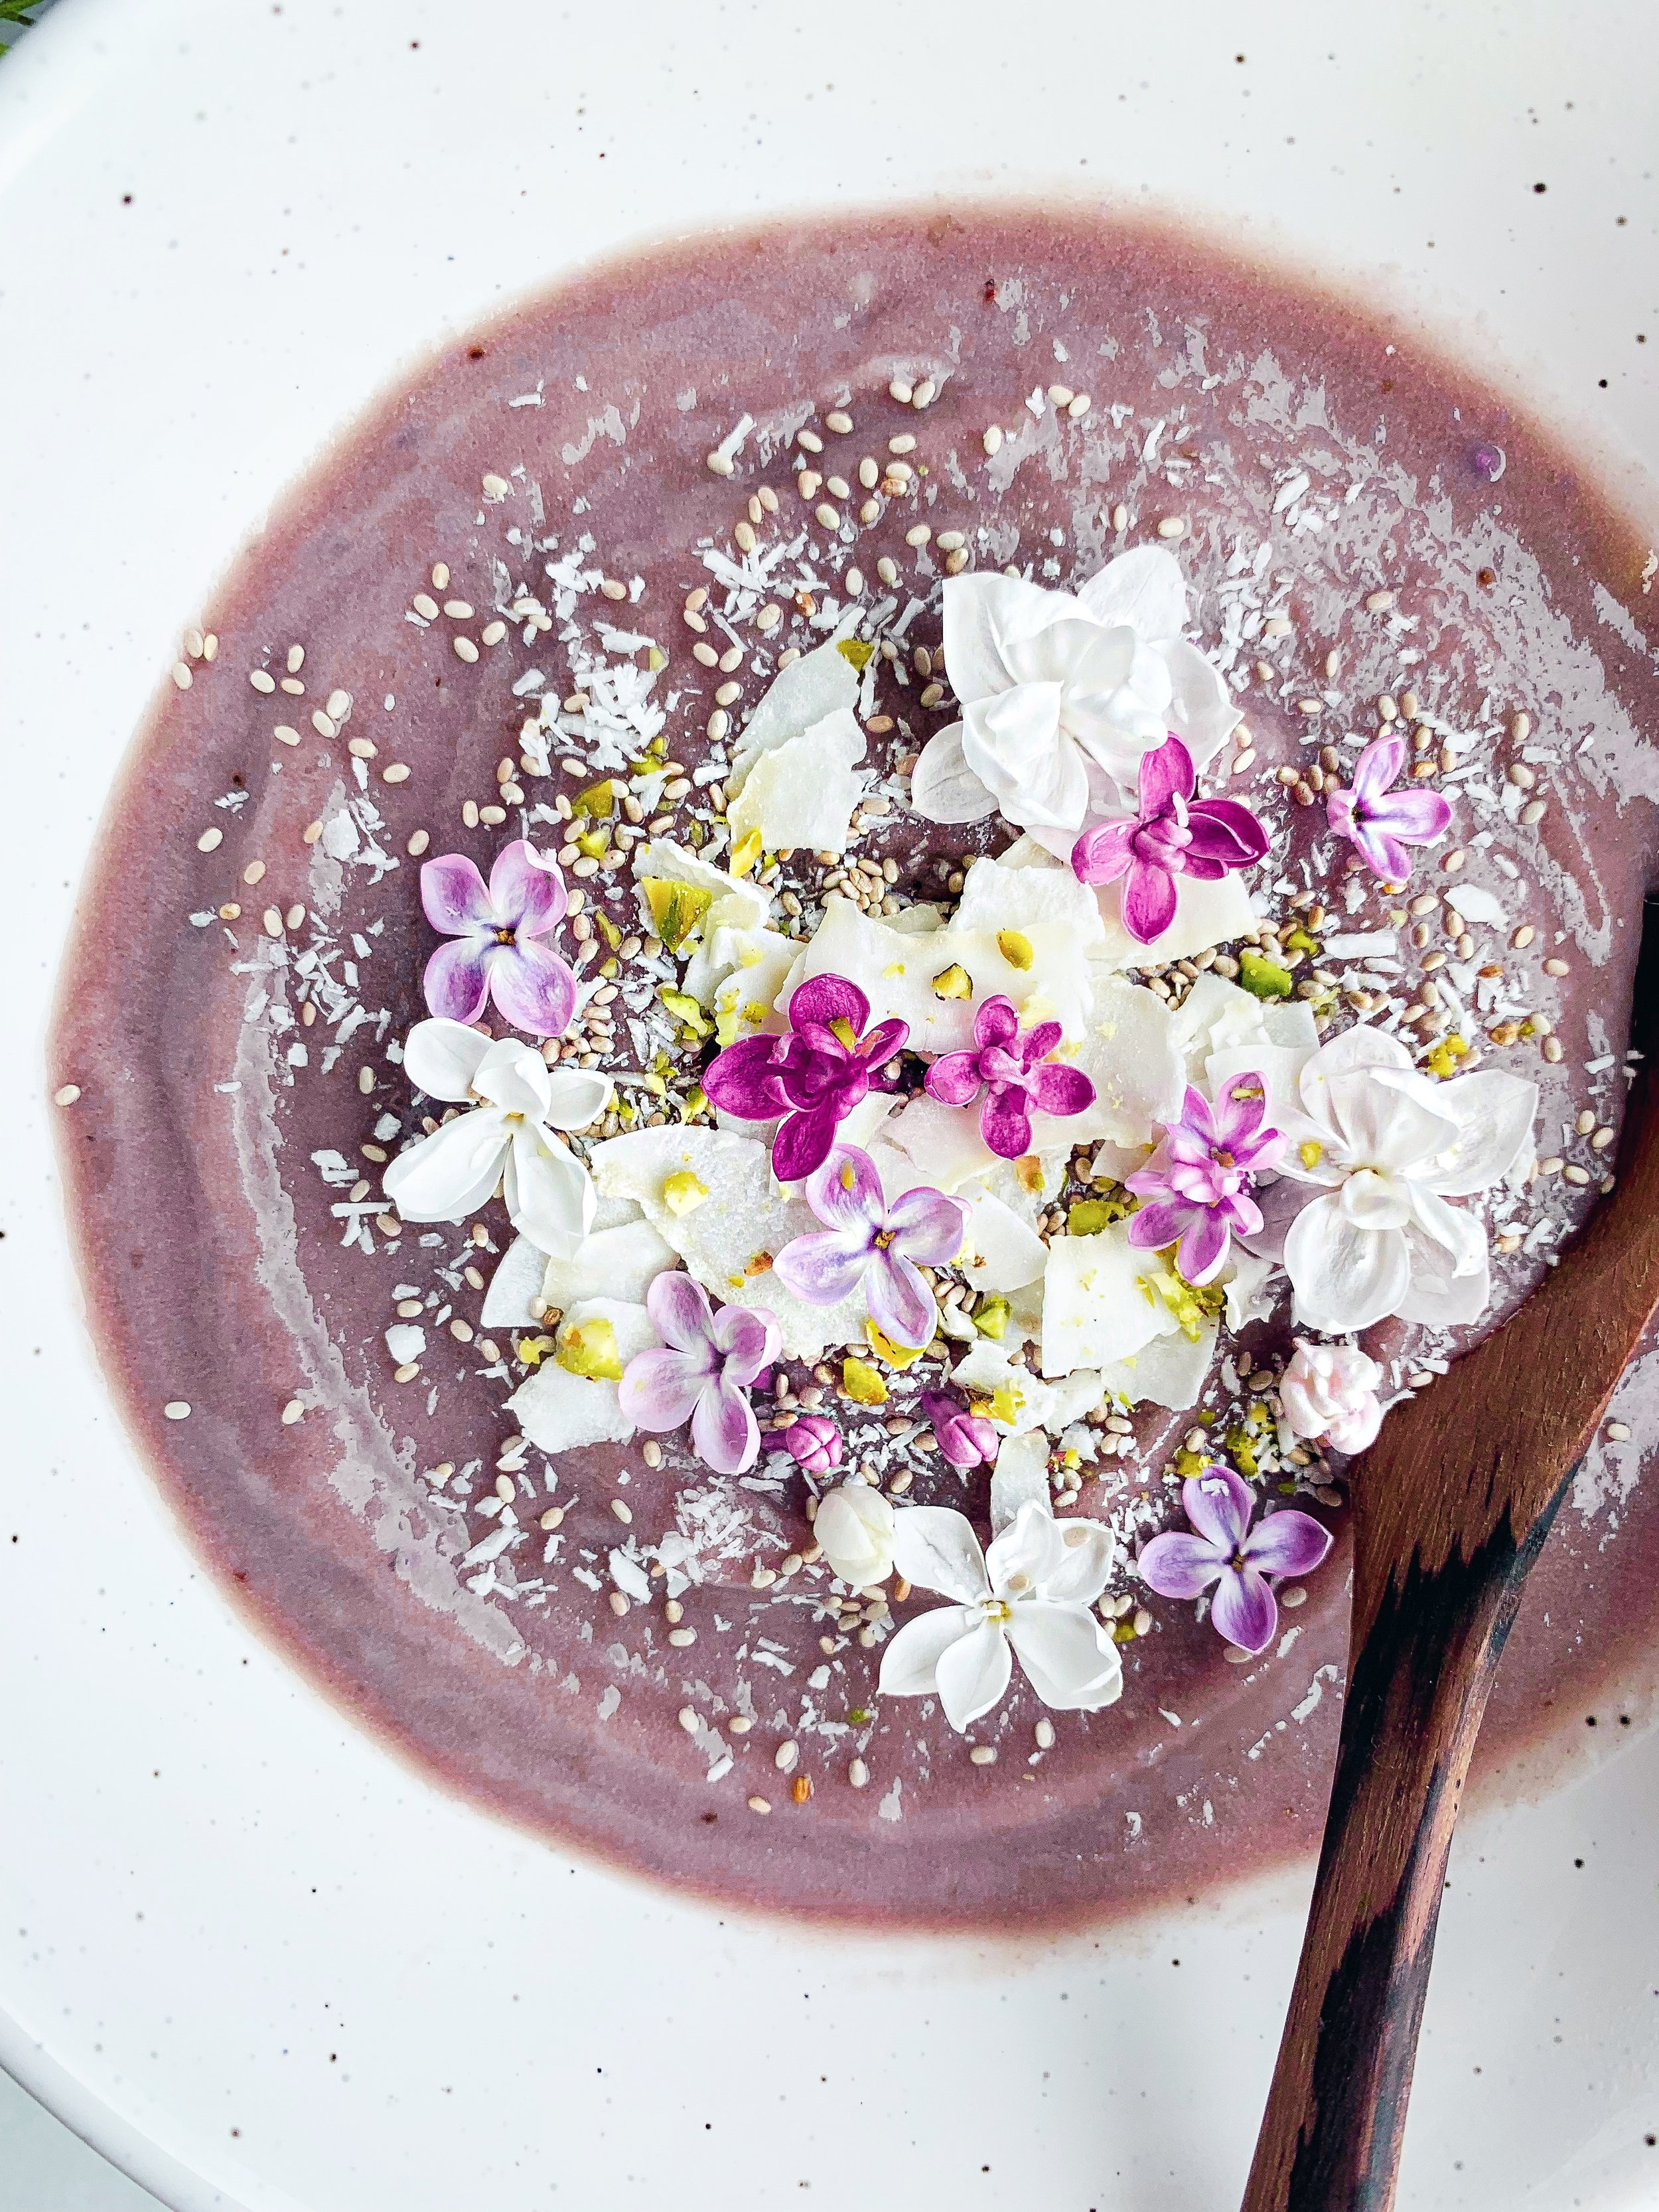 Lilac Nice Cream with Edible Flowers {Vegan, Gluten Free, Paleo} - A 3-ingredient plantbased, vegan, ice cream or smoothie bowl that has 2 simple ingredients, frozen bananas and steamed then frozen purple cauliflower. Perfect for a summer day! Just so happens to be gluten free and paleo as well - Foody First - #vegan #plantbased #nicecream #lilacs #edibleflowers #glutenfree #paleo #smoothiebowl